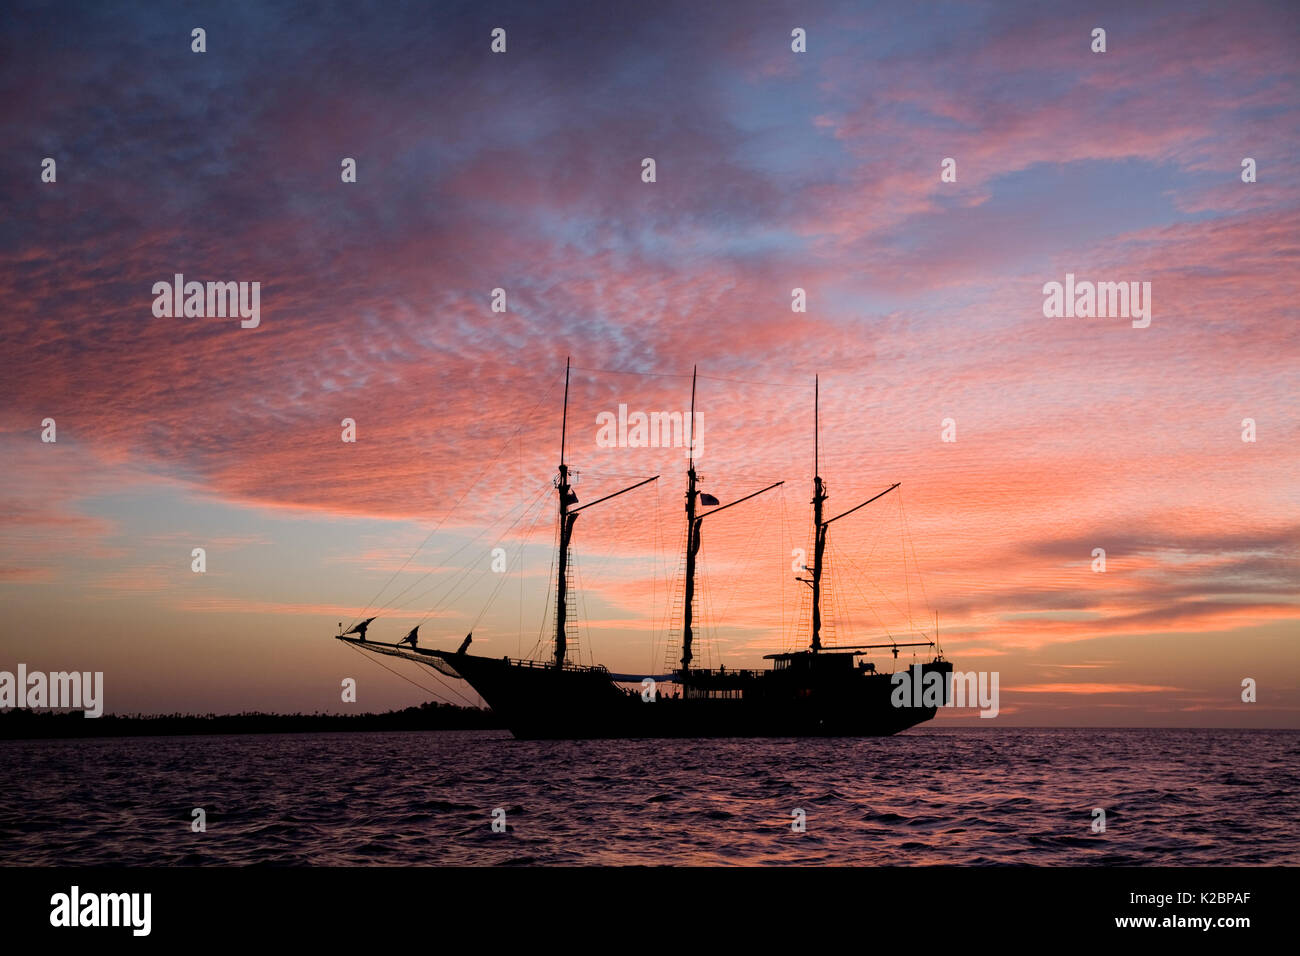 Luxury liveaboard Paradise Dancer at sunset, North Sulawesi, Indonesia, Pacific Ocean. May 2008. - Stock Image